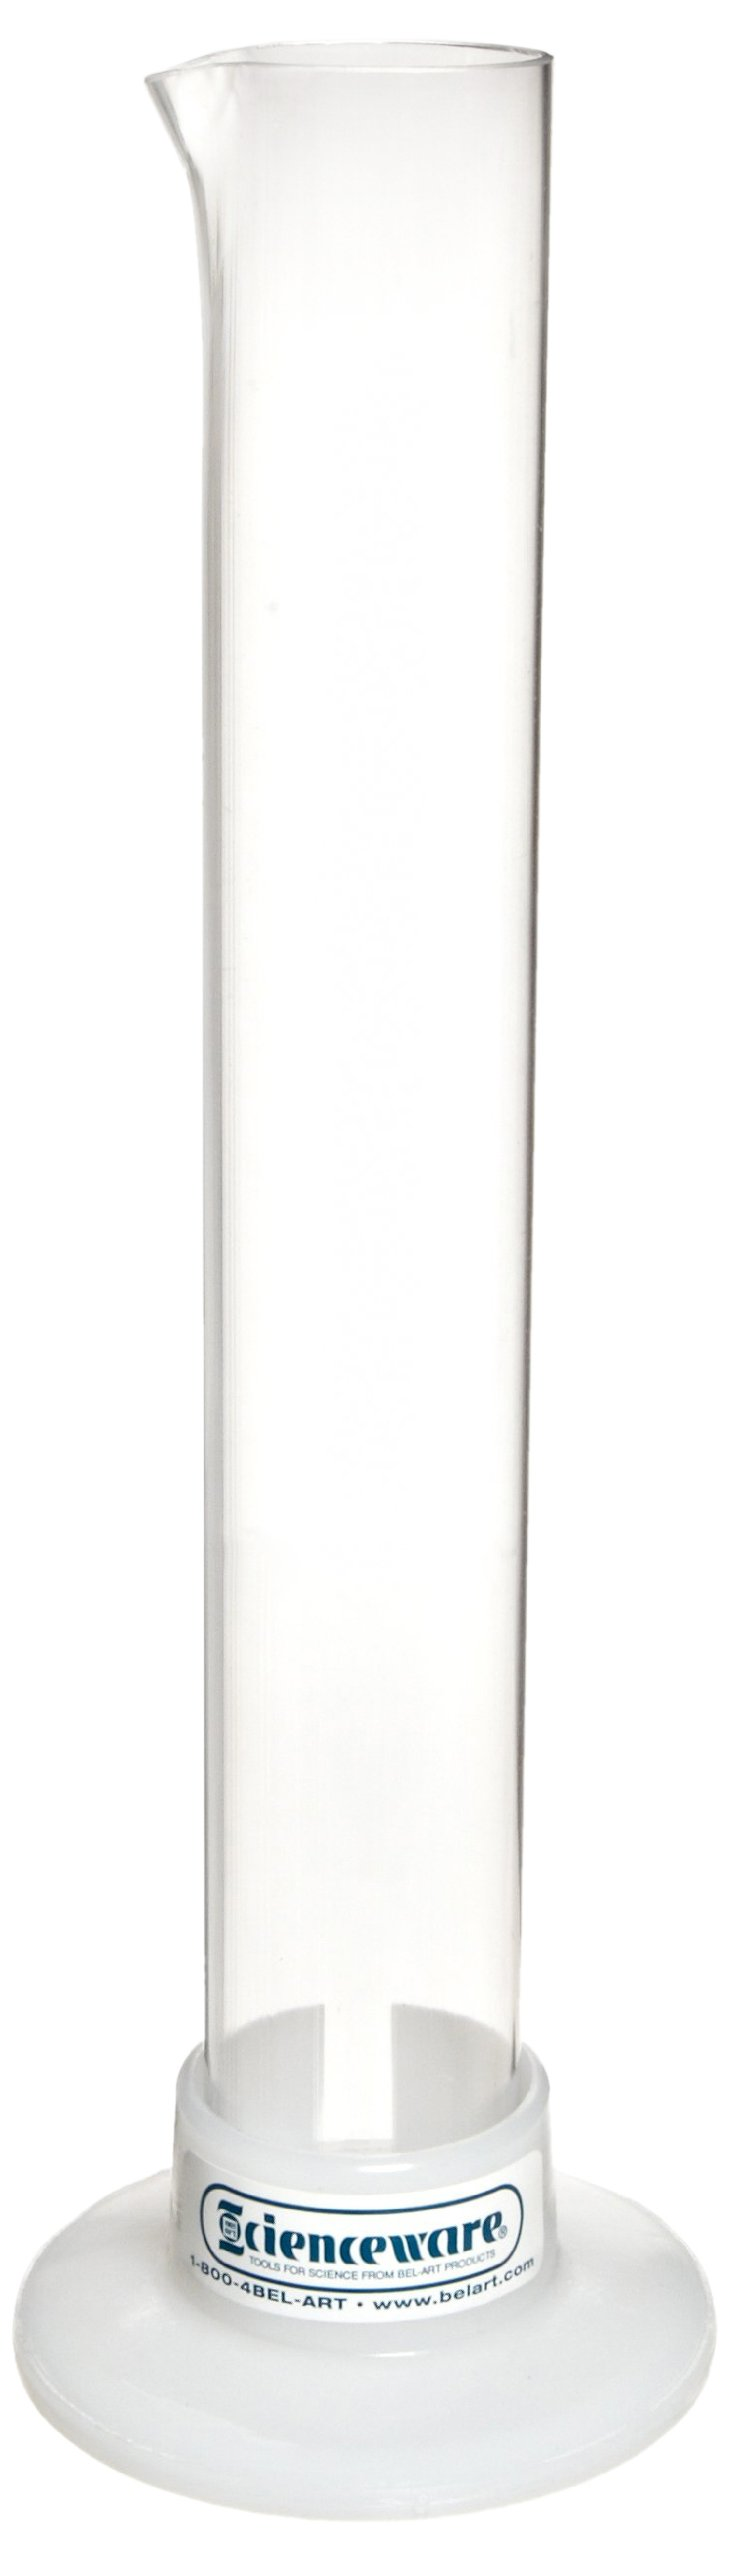 Bel-Art Clear Polycarbonate Hydrometer Jar (H17817-0000) by SP Scienceware